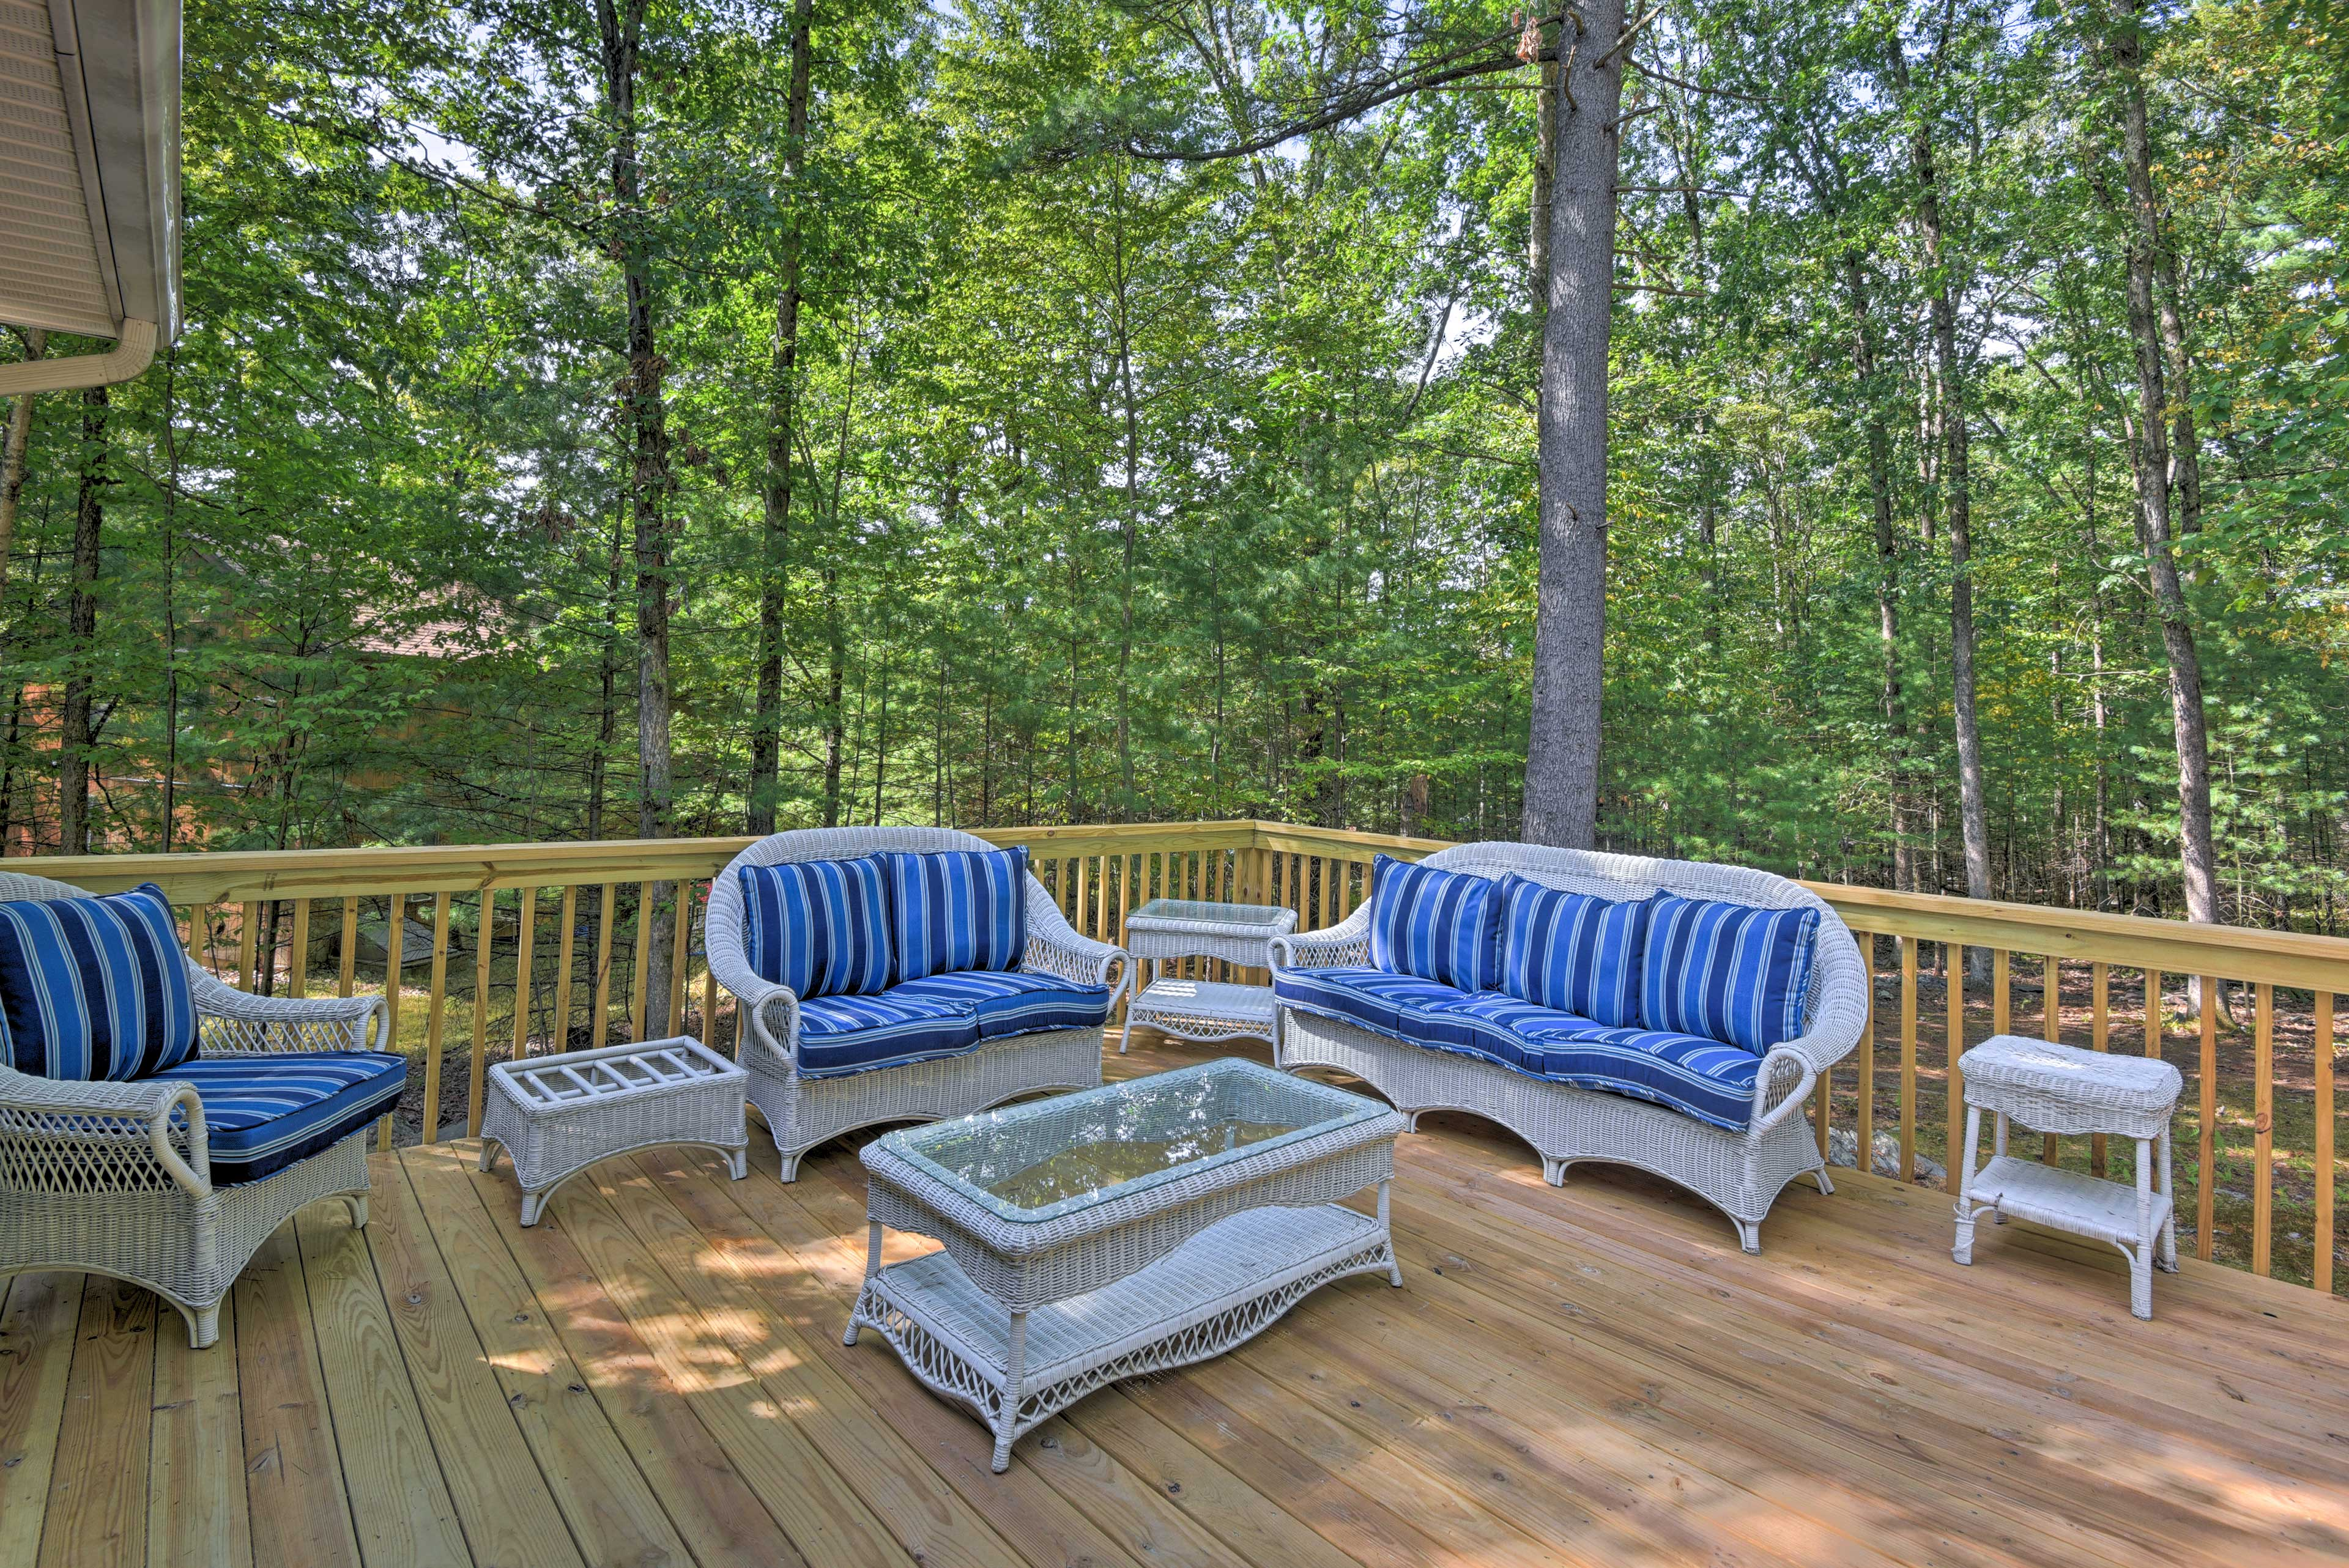 Enjoy some fresh air on the updated deck.